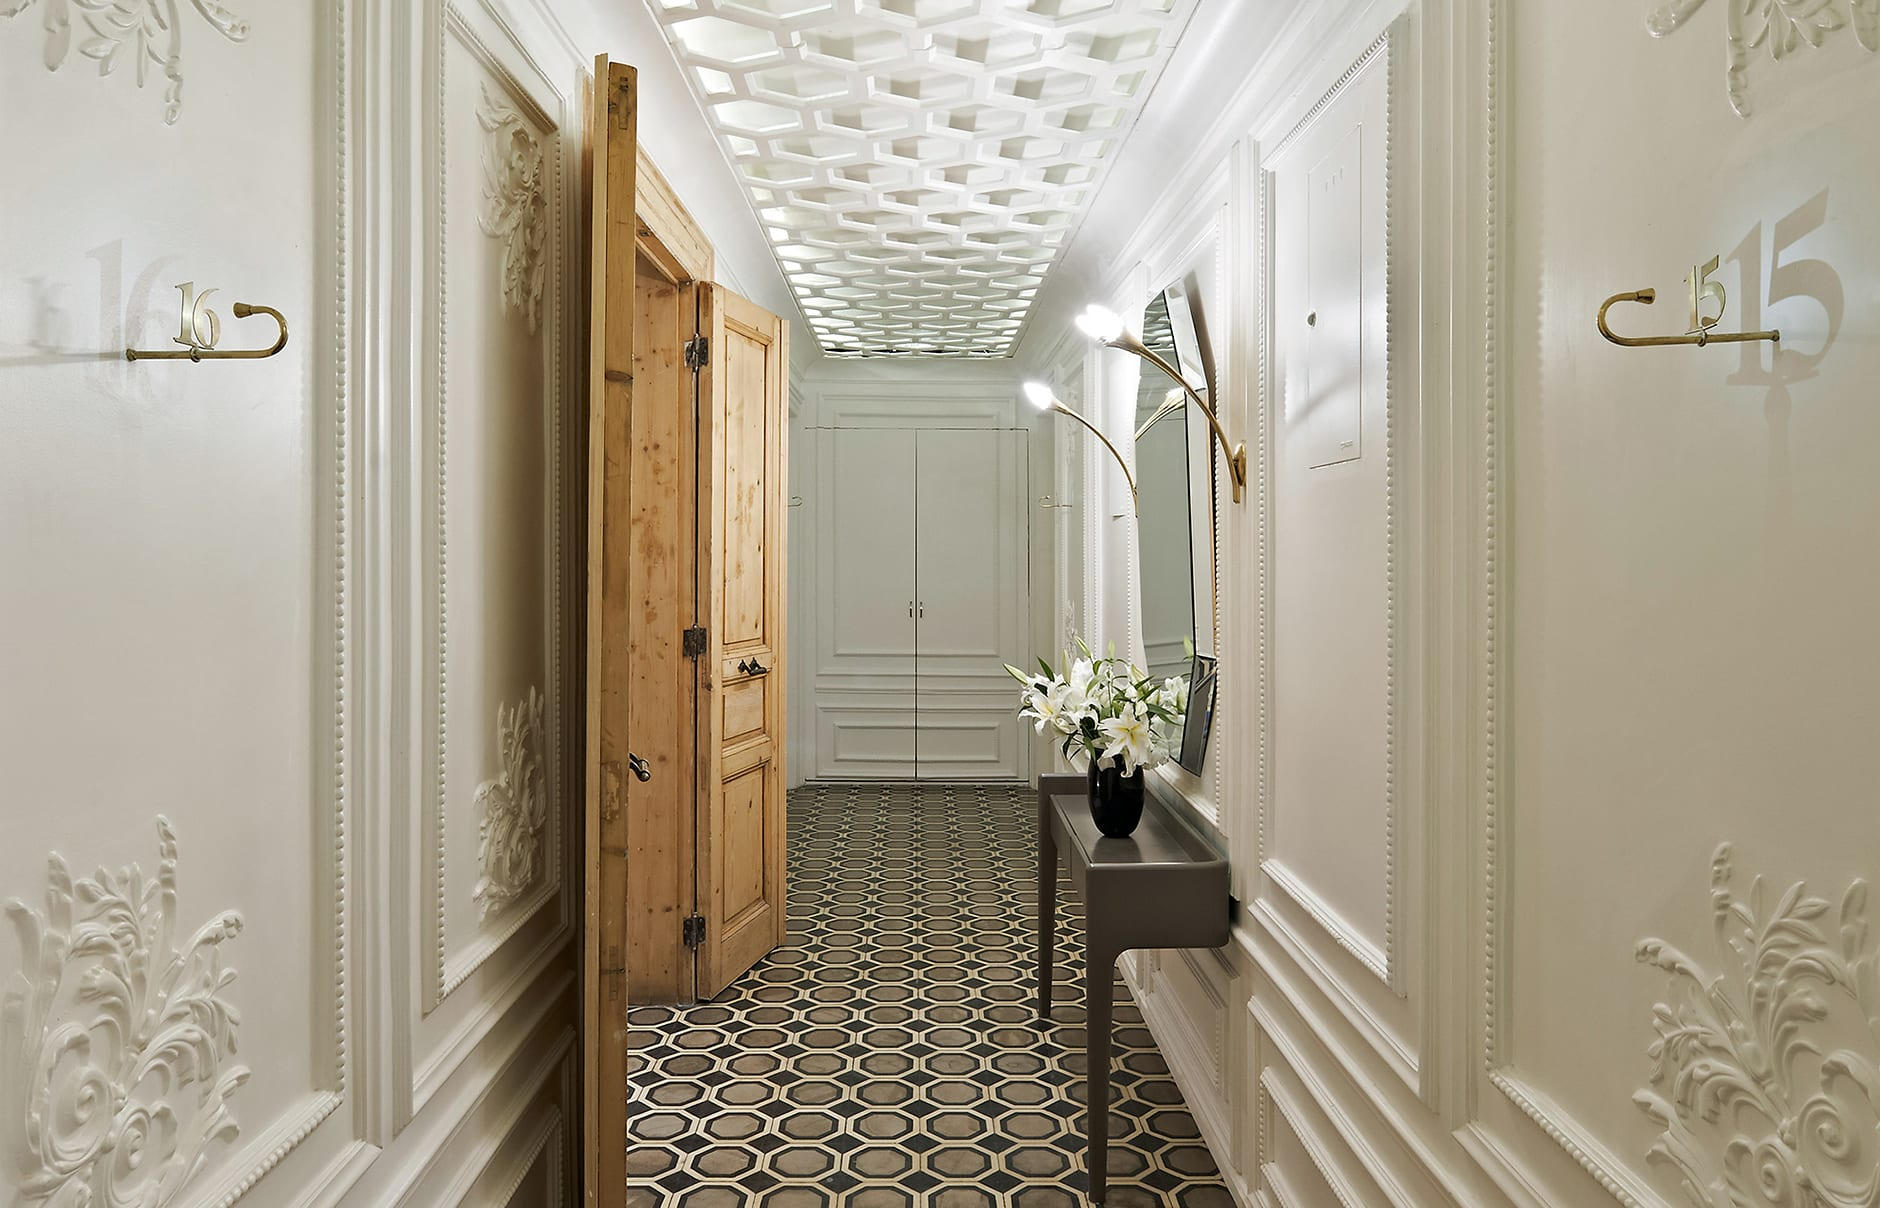 Hallway. The House Hotel Galatasaray, Istanbul. ©The House Hotel